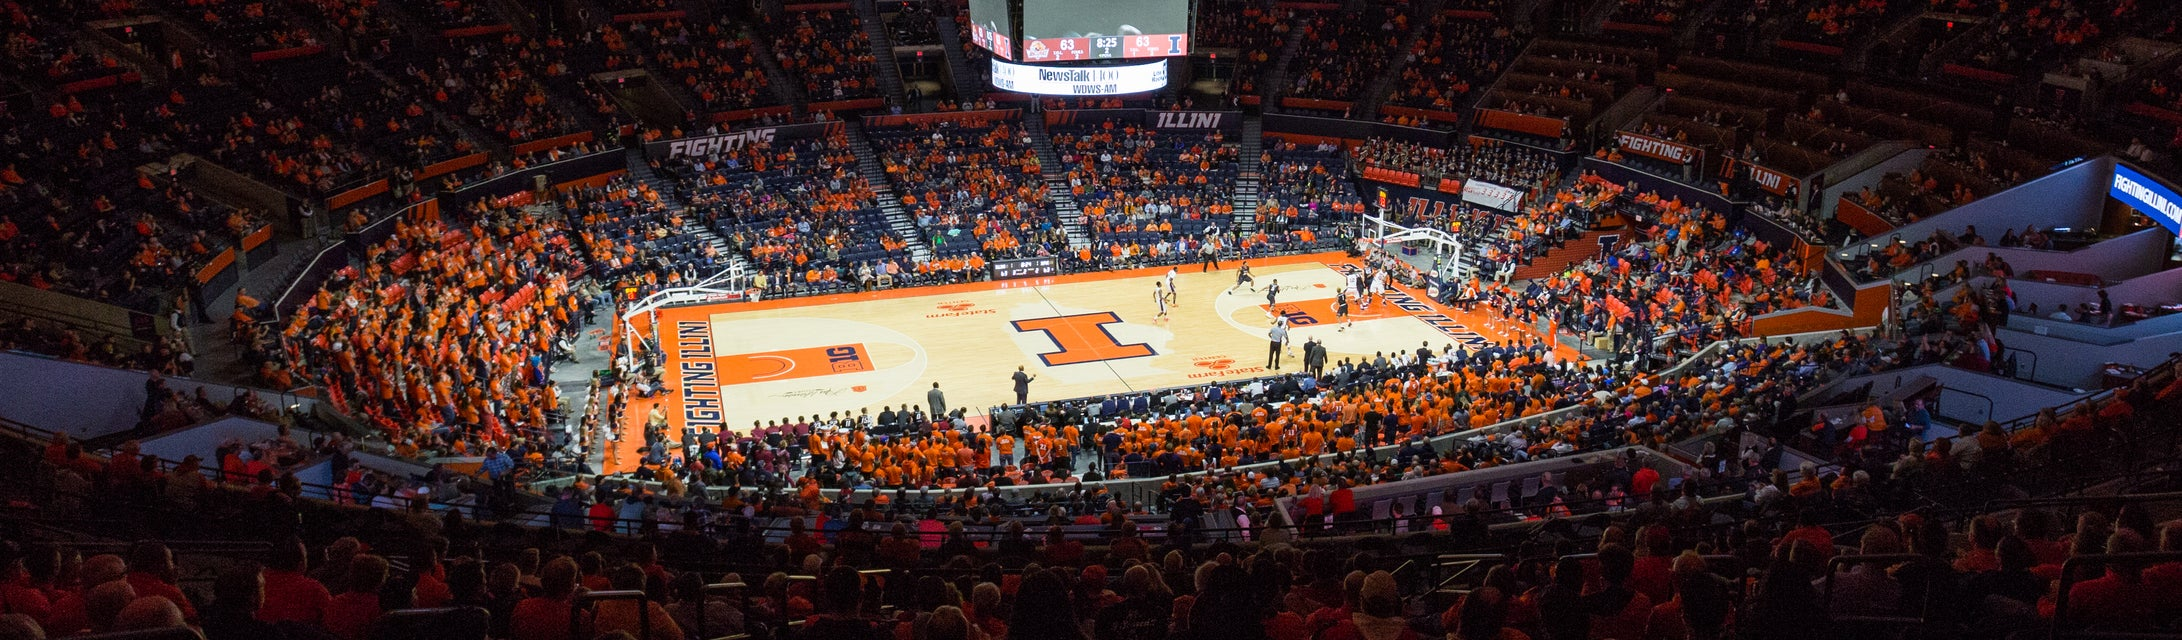 Illinois Basketball Tickets